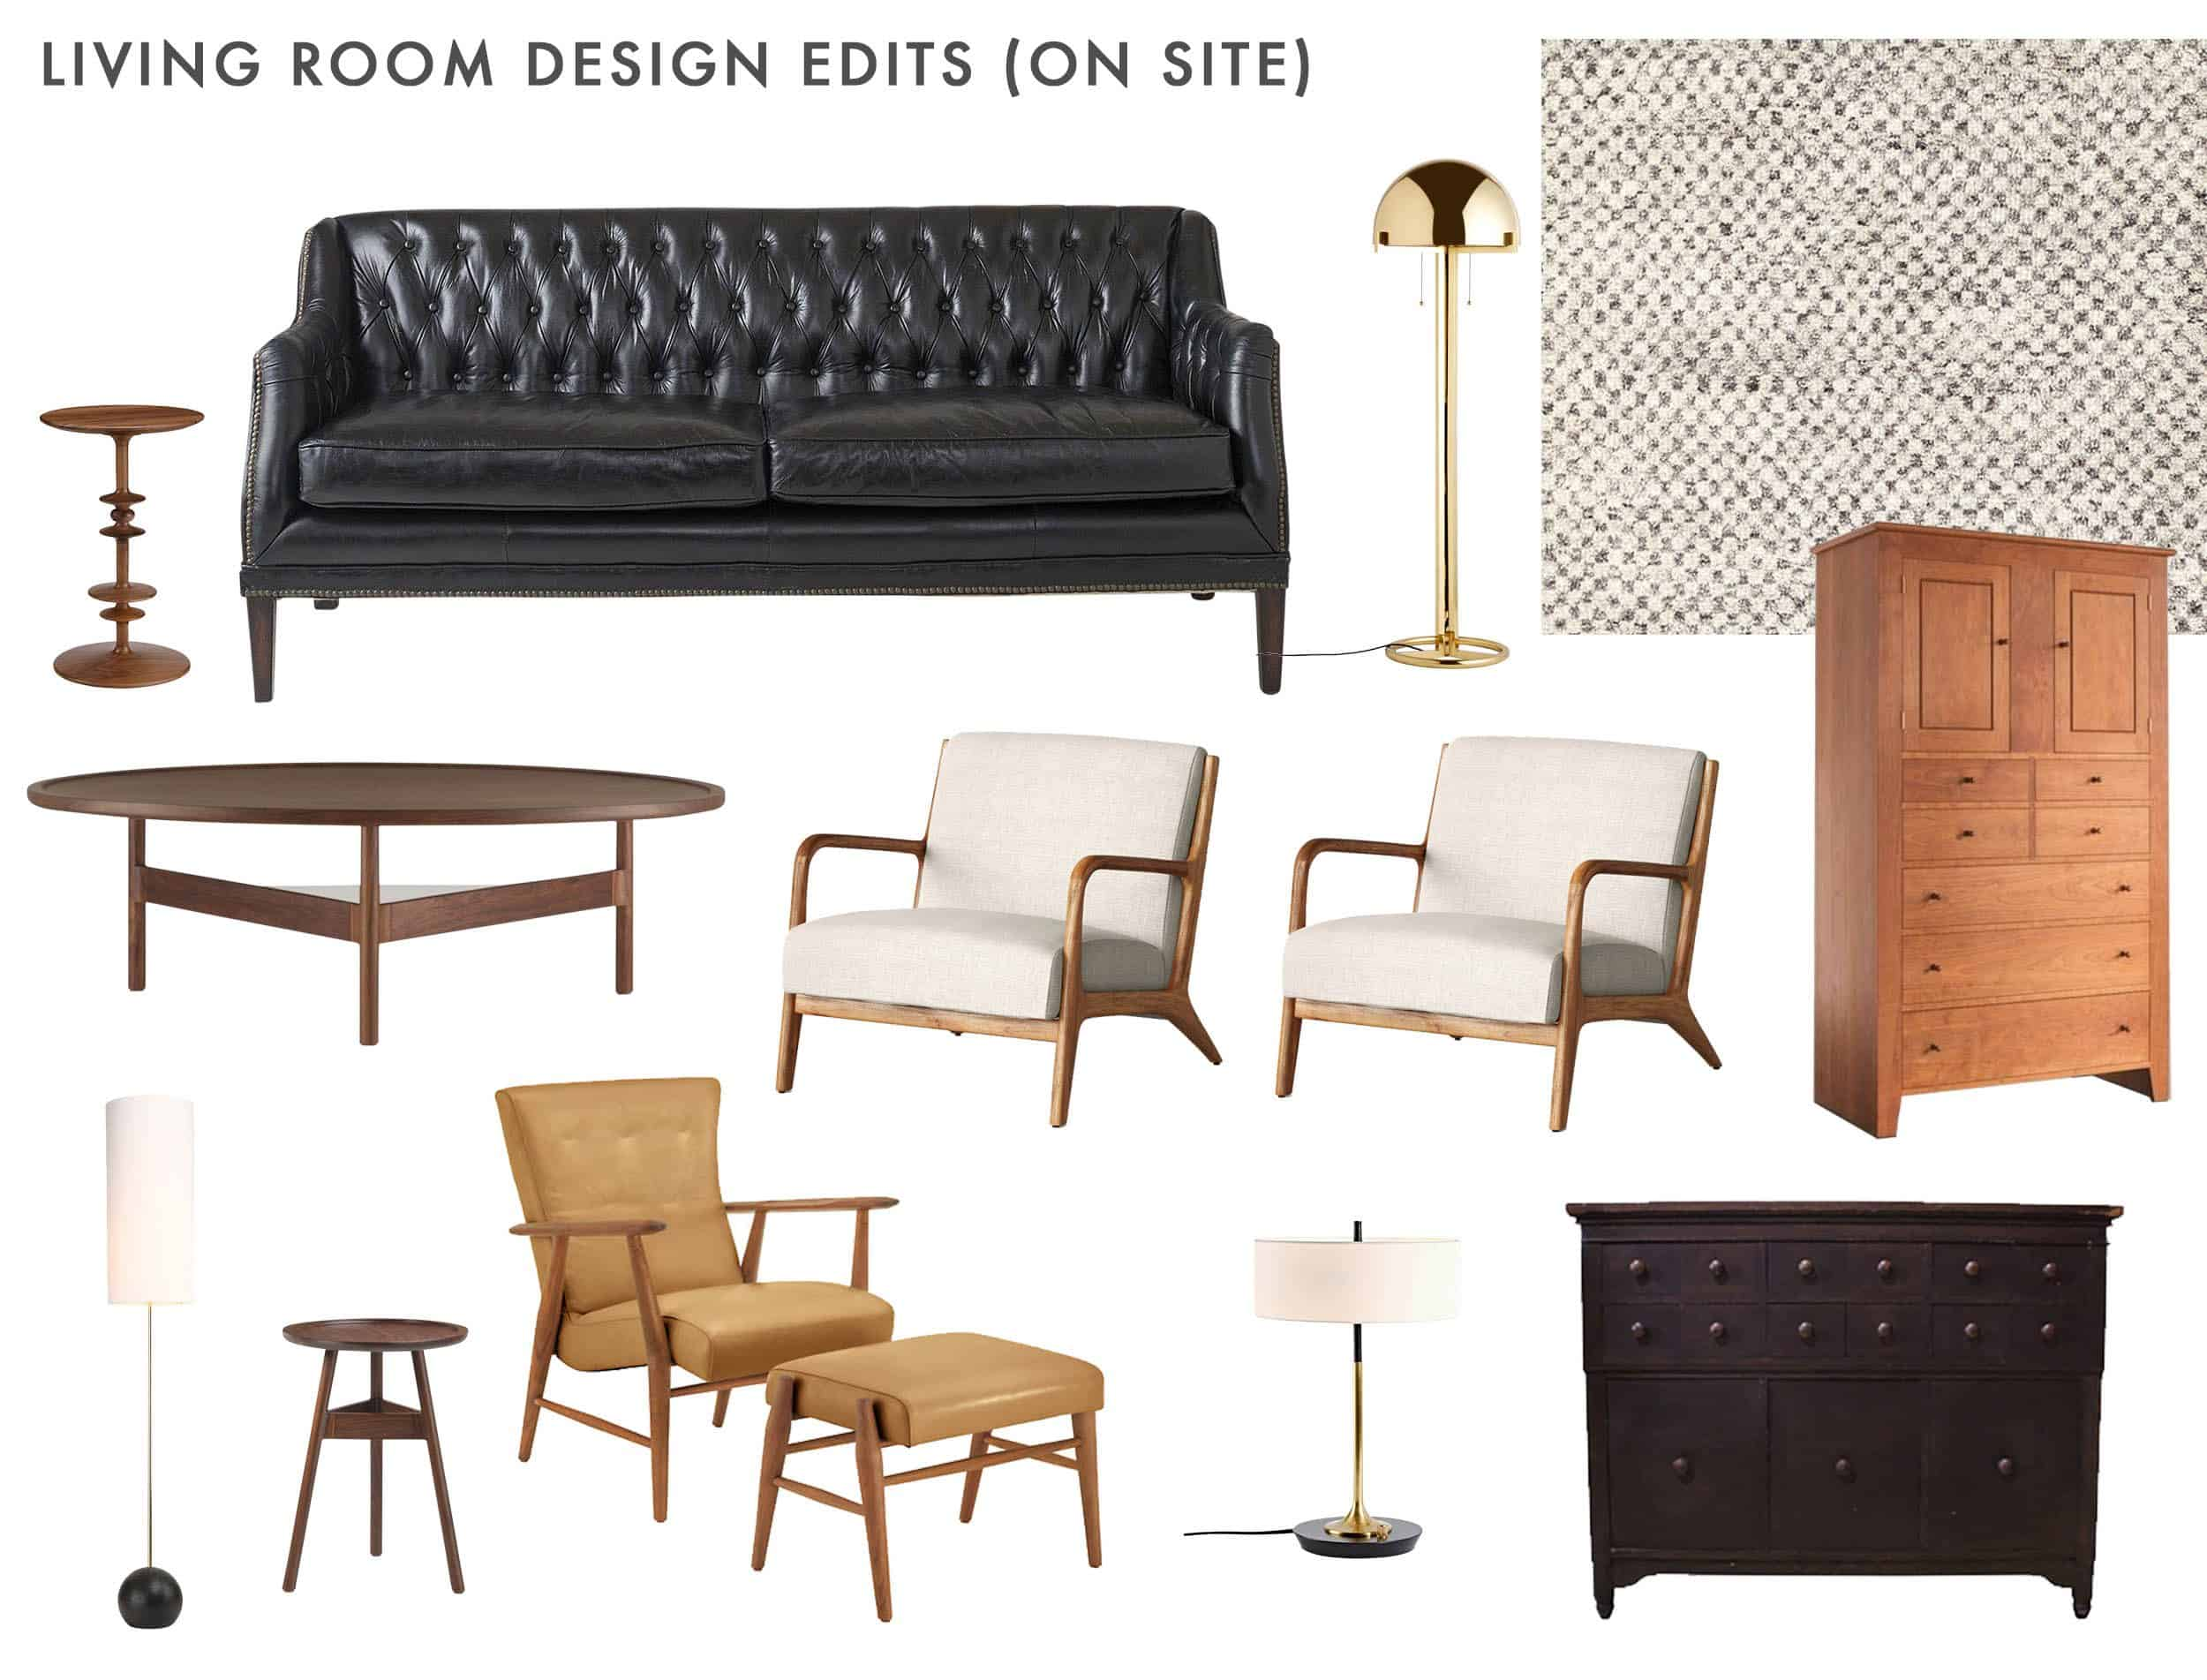 Living Room Design On Site Edits